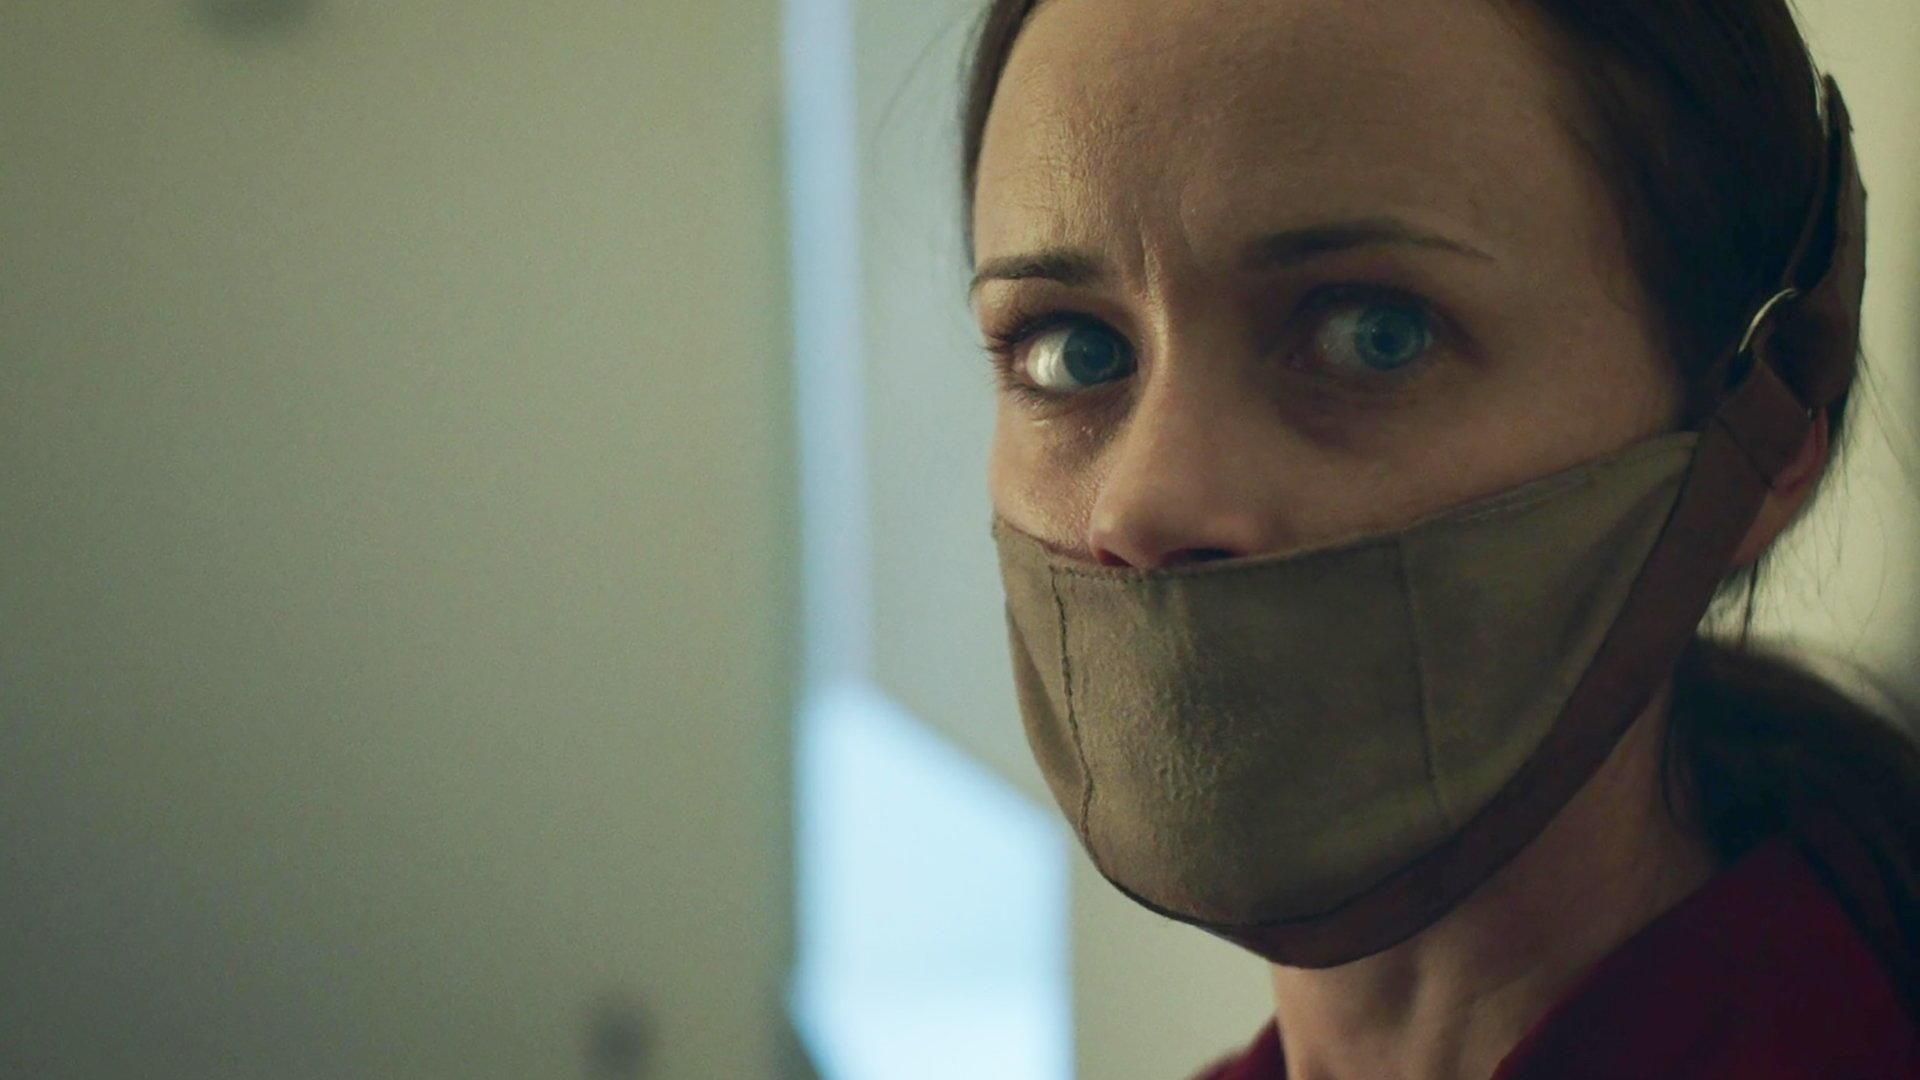 The Handmaid's Tale Season 1 Episode 4 S01E04 HD Watch Online